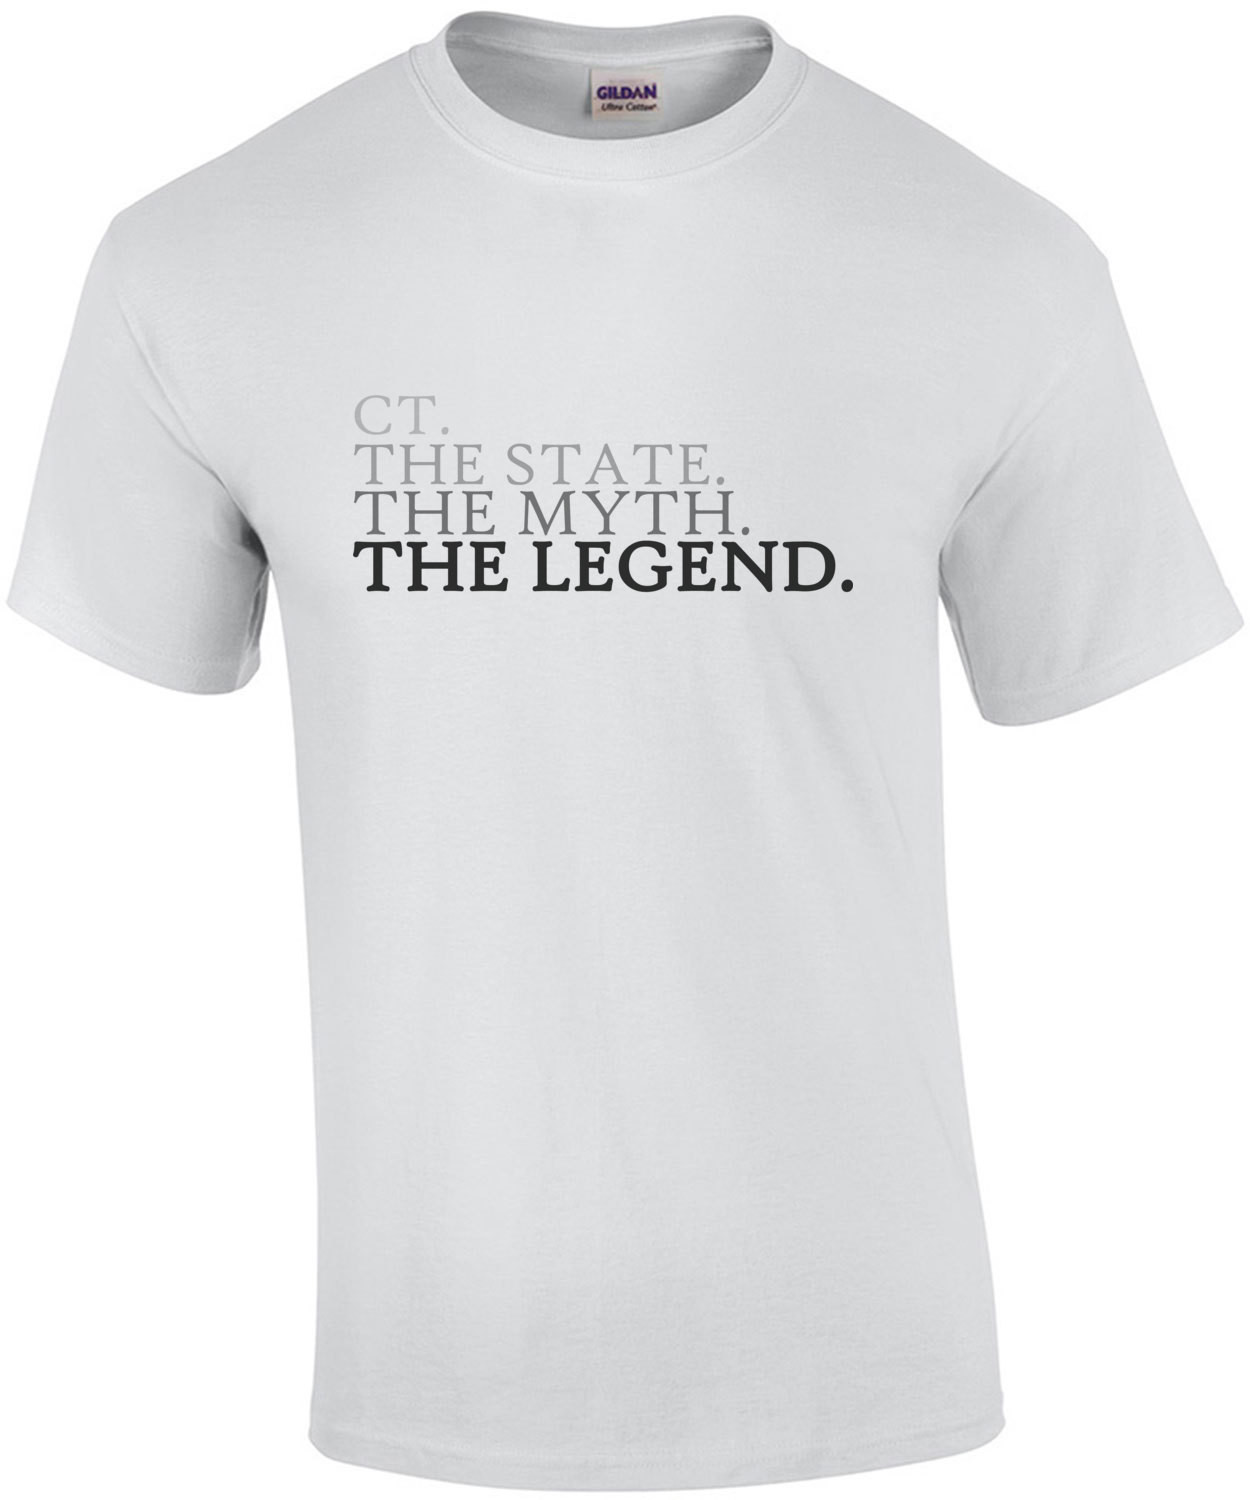 CT. The State. The Myth. The Legend. Connecticut T-Shirt